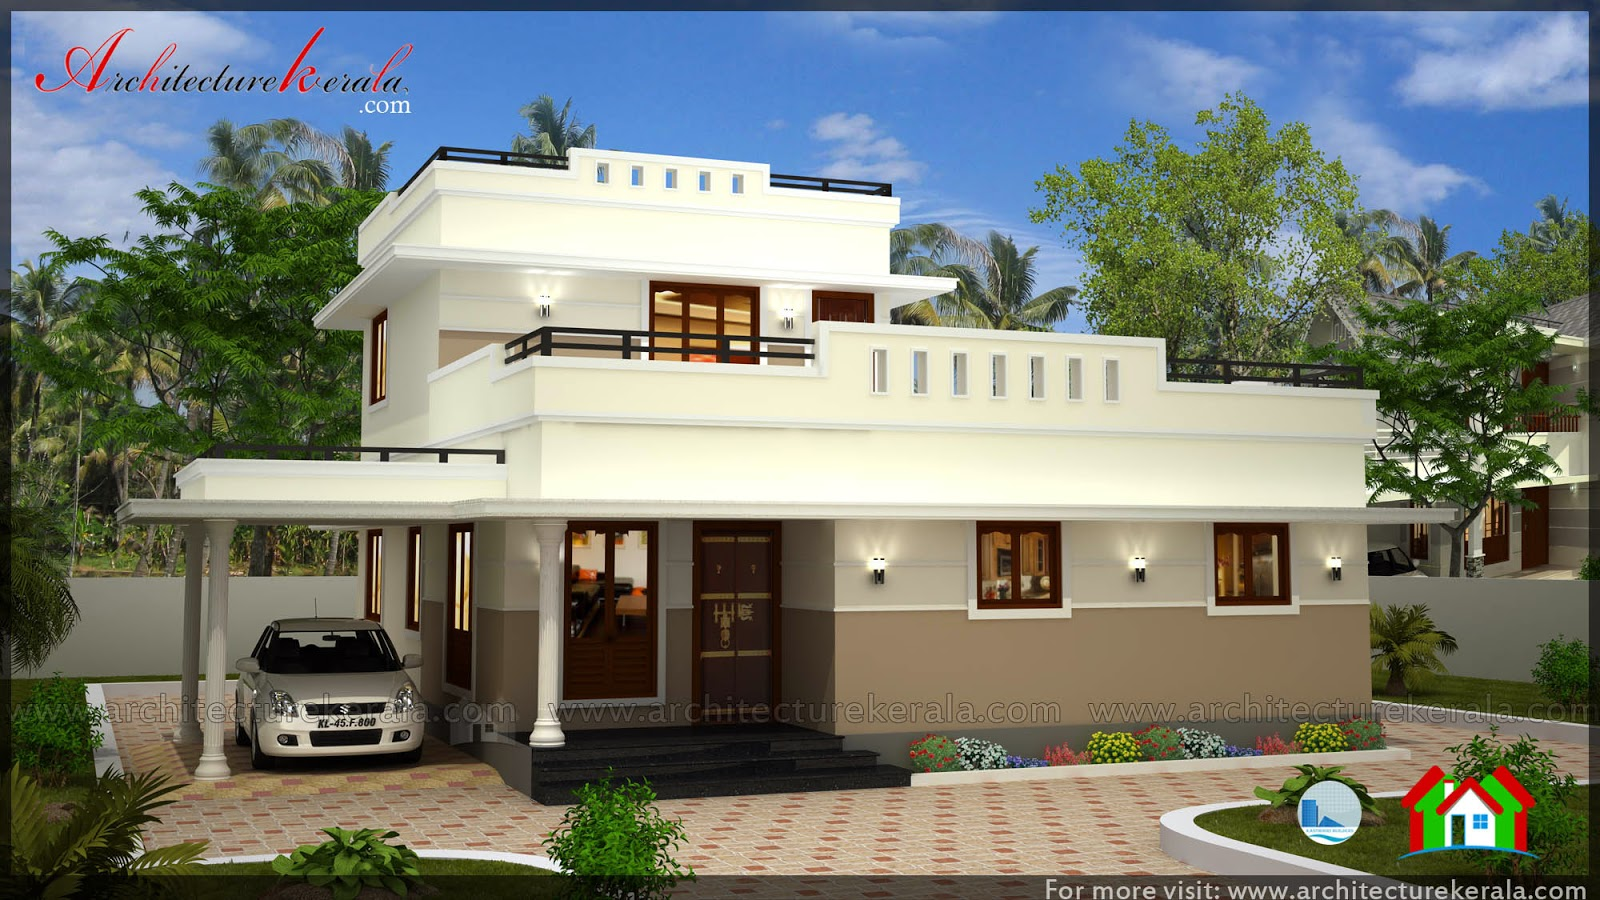 Low cost 3 bedroom kerala house plan with elevation free for Low cost house plans with estimate